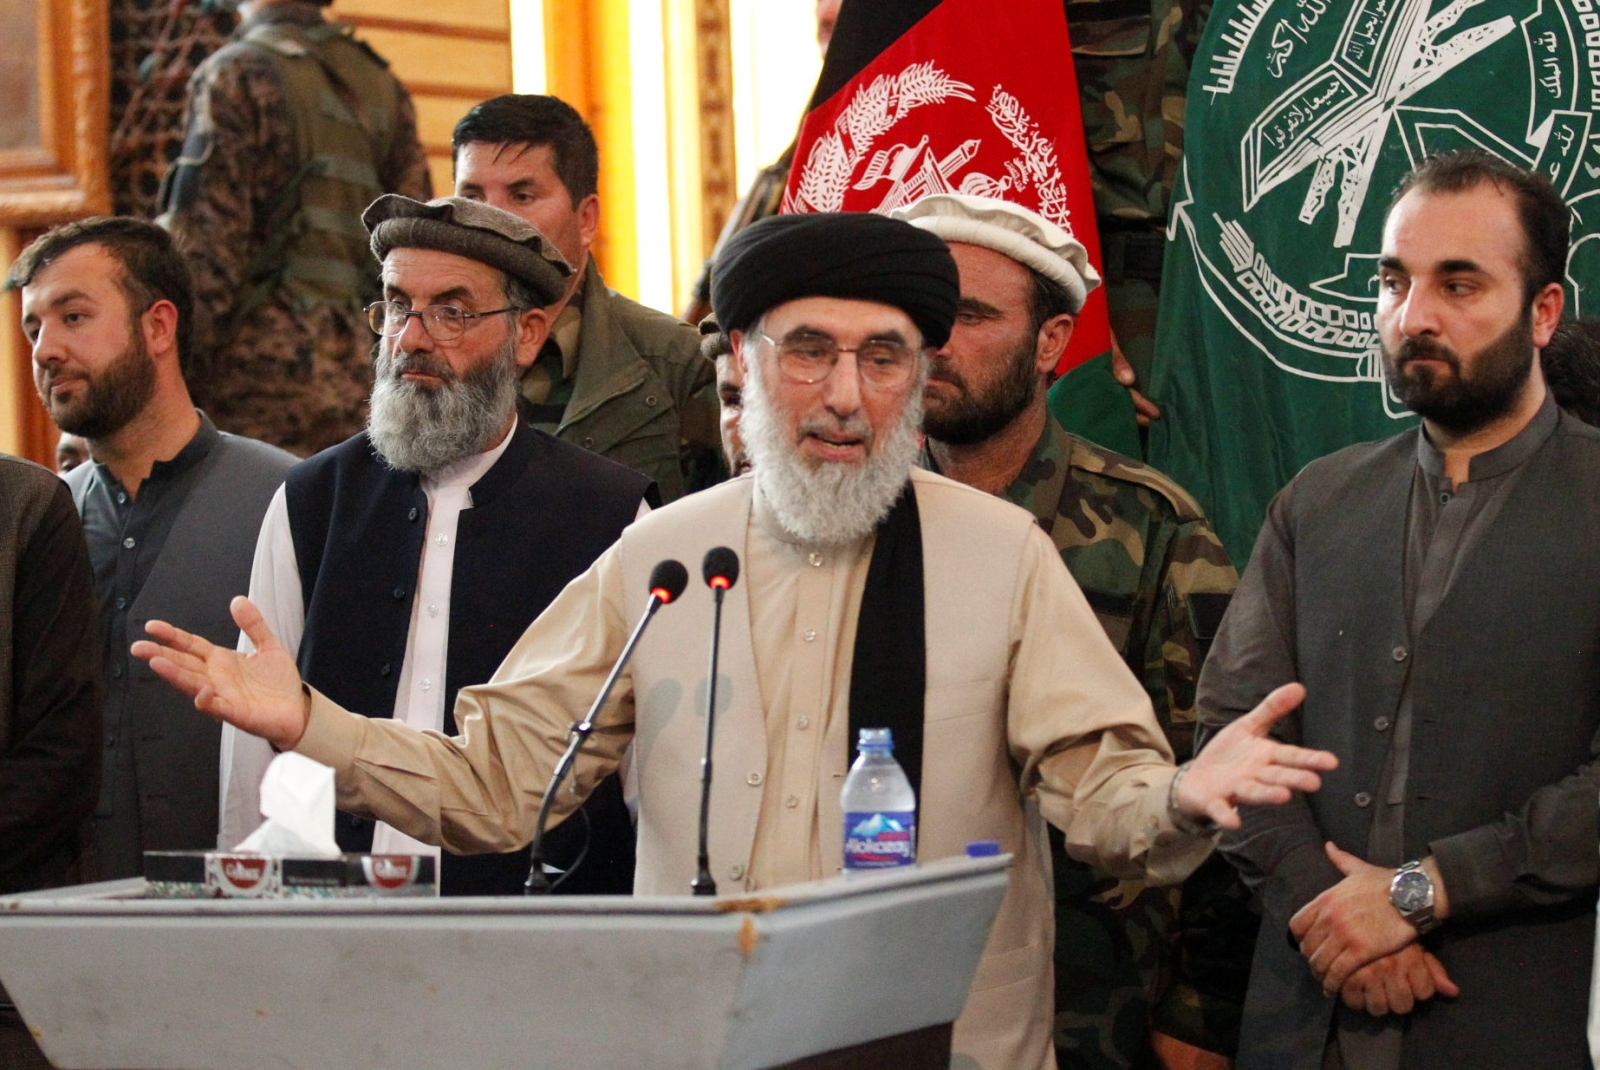 Warlord Gulbuddin Hekmatyar returned to Kabul on May 4 after signing a peace deal with the Afghan government. ( Reuters/Parwiz )